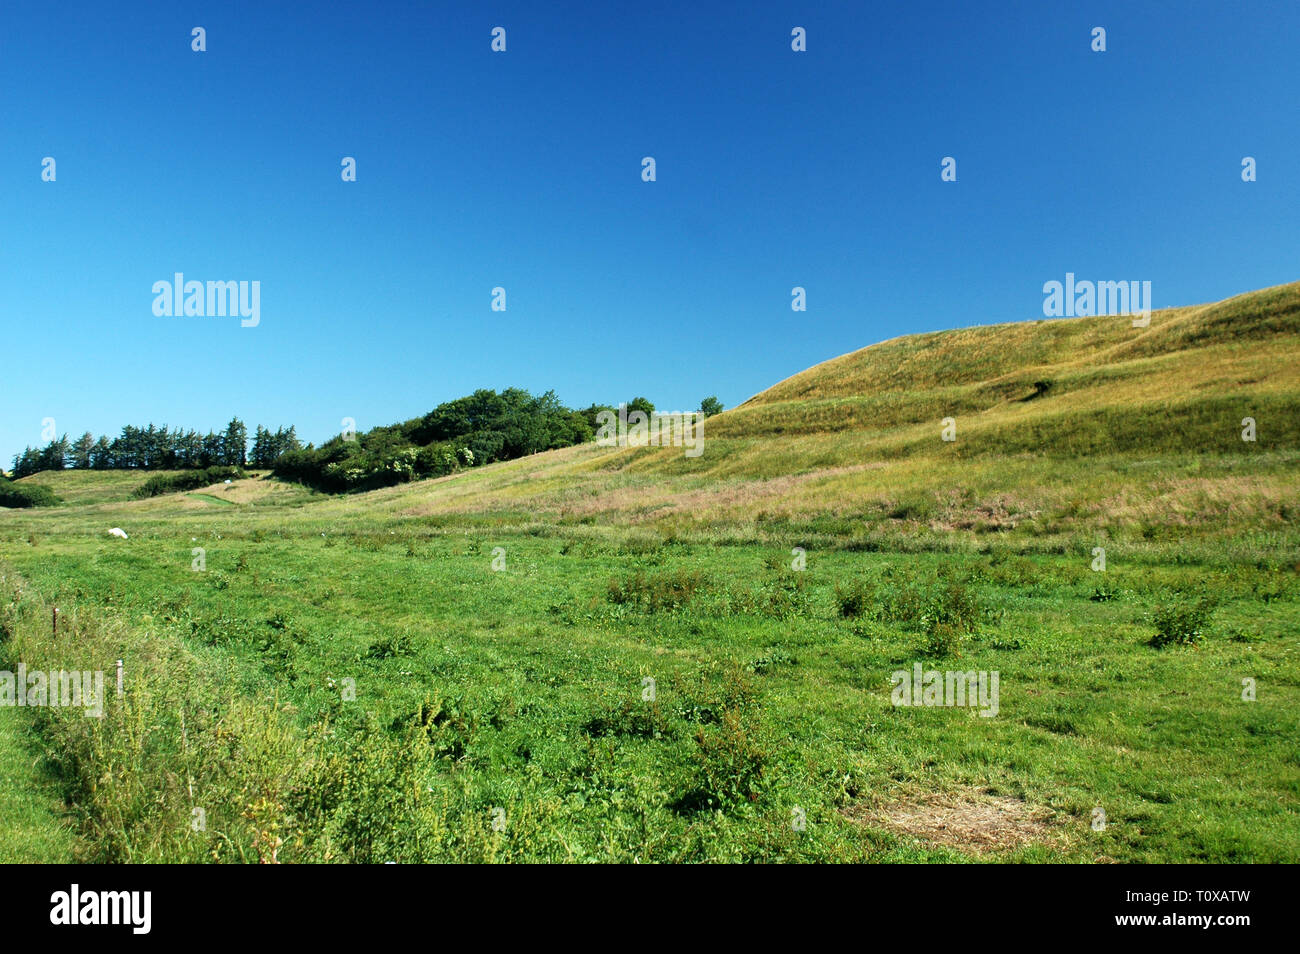 Sloped landscape, formed by a subglacial stream trench during ice age. - Stock Image